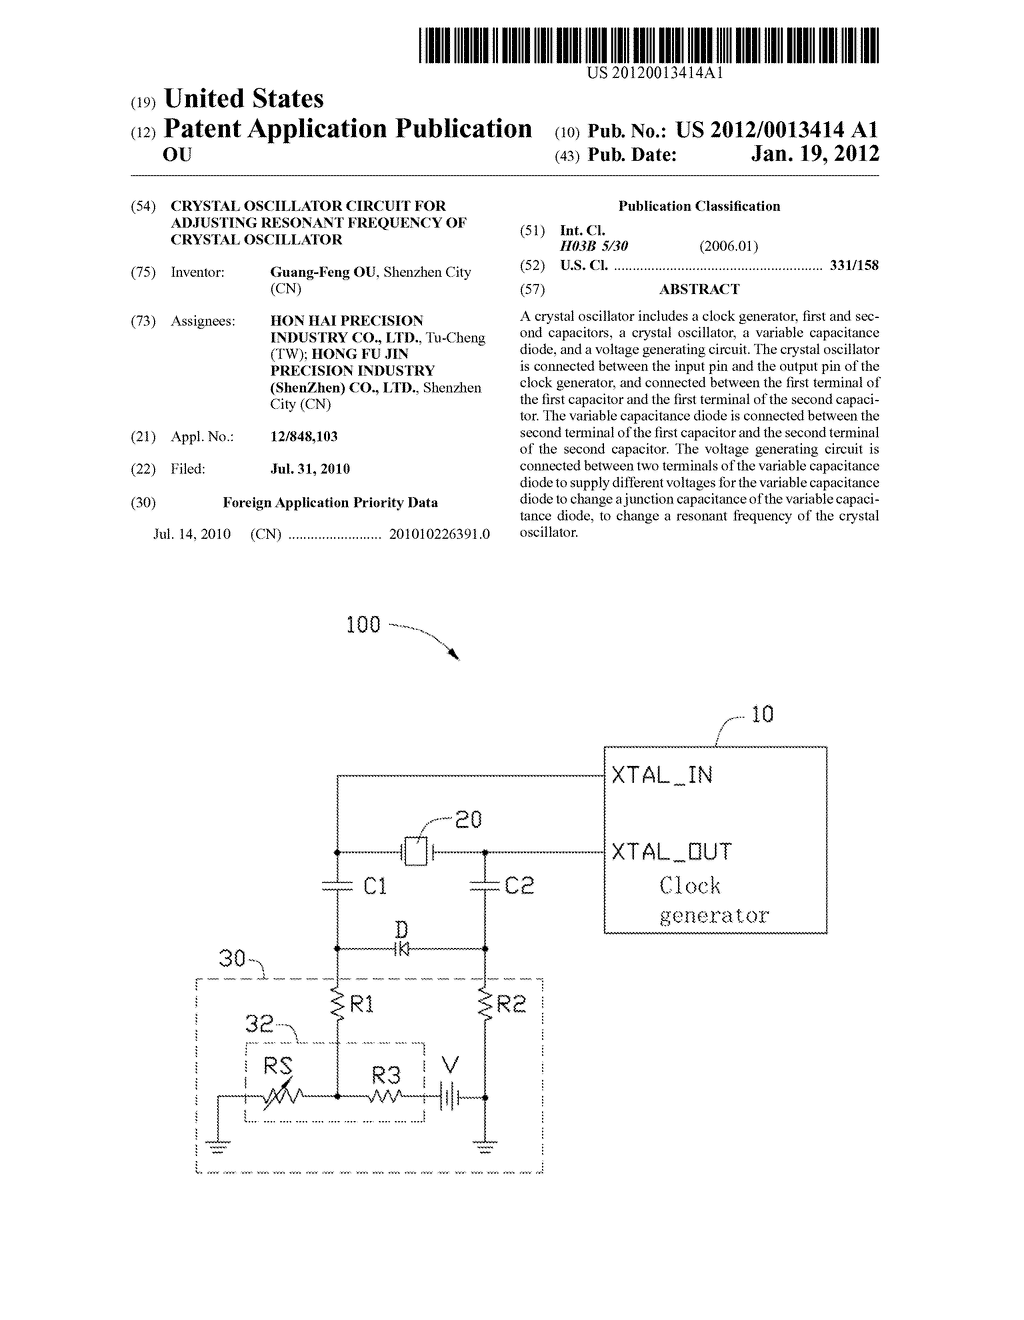 Crystal Oscillator Circuit For Adjusting Resonant Frequency Of